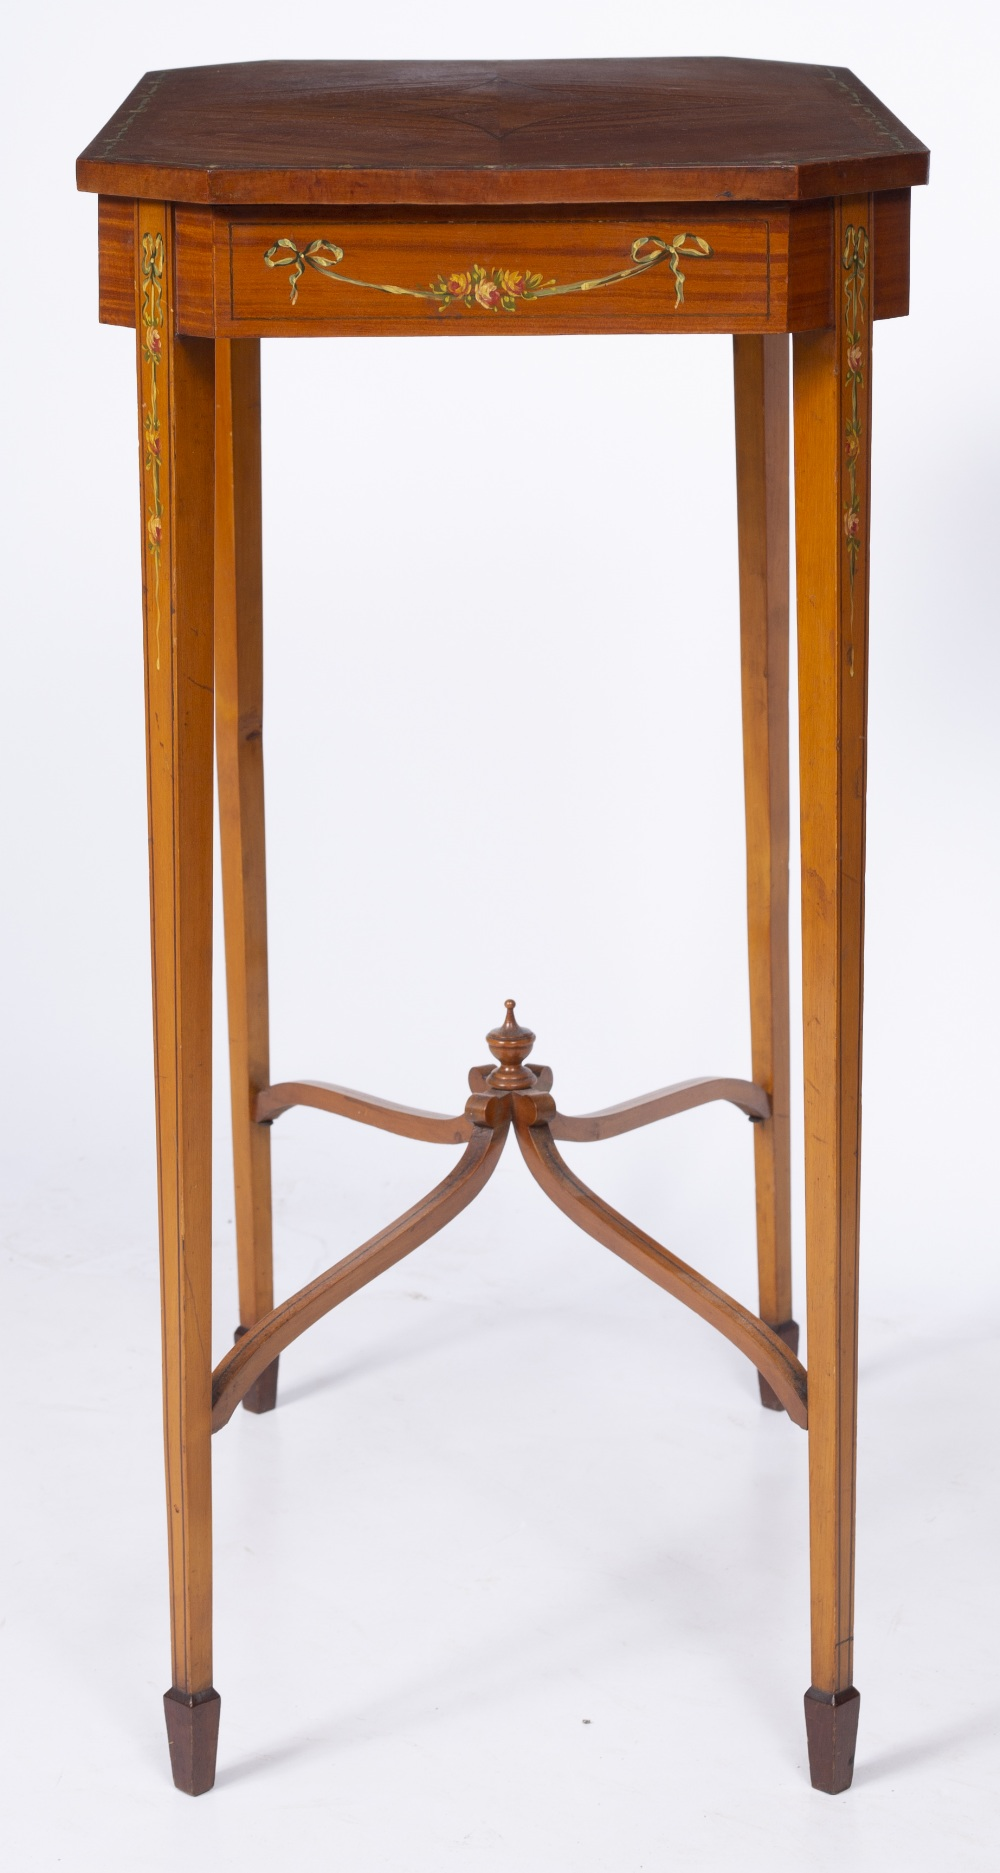 AN EDWARDIAN SATINWOOD OCCASIONAL TABLE, the rectangular top with canted corners and crossbanded - Image 4 of 8